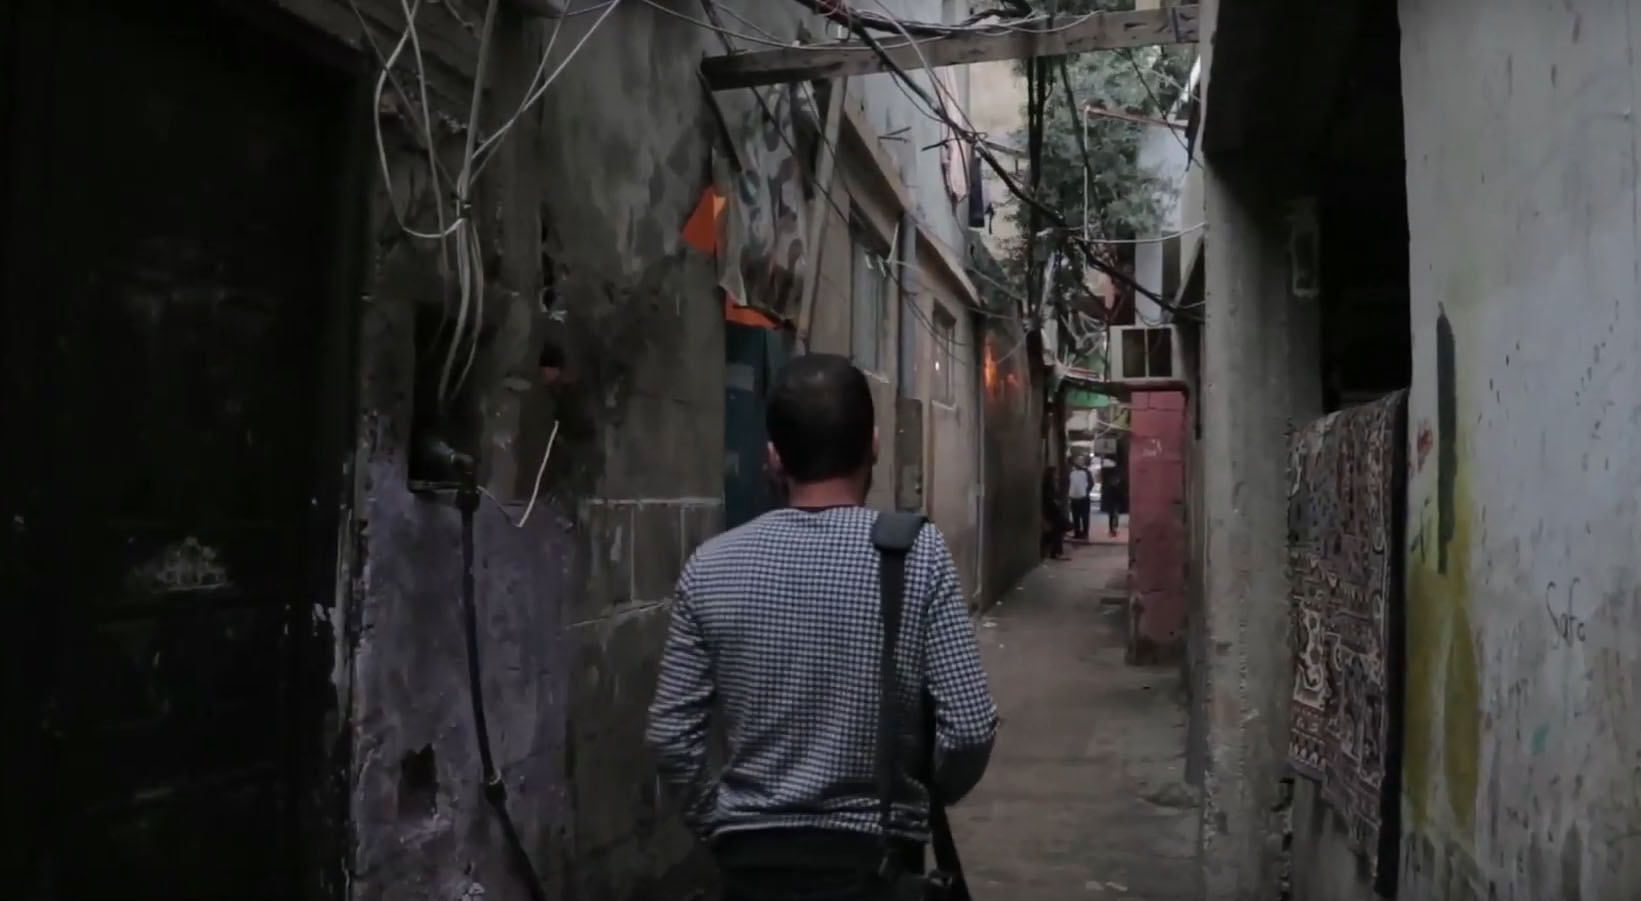 The shattered dreams of Mahmoud Mohammad